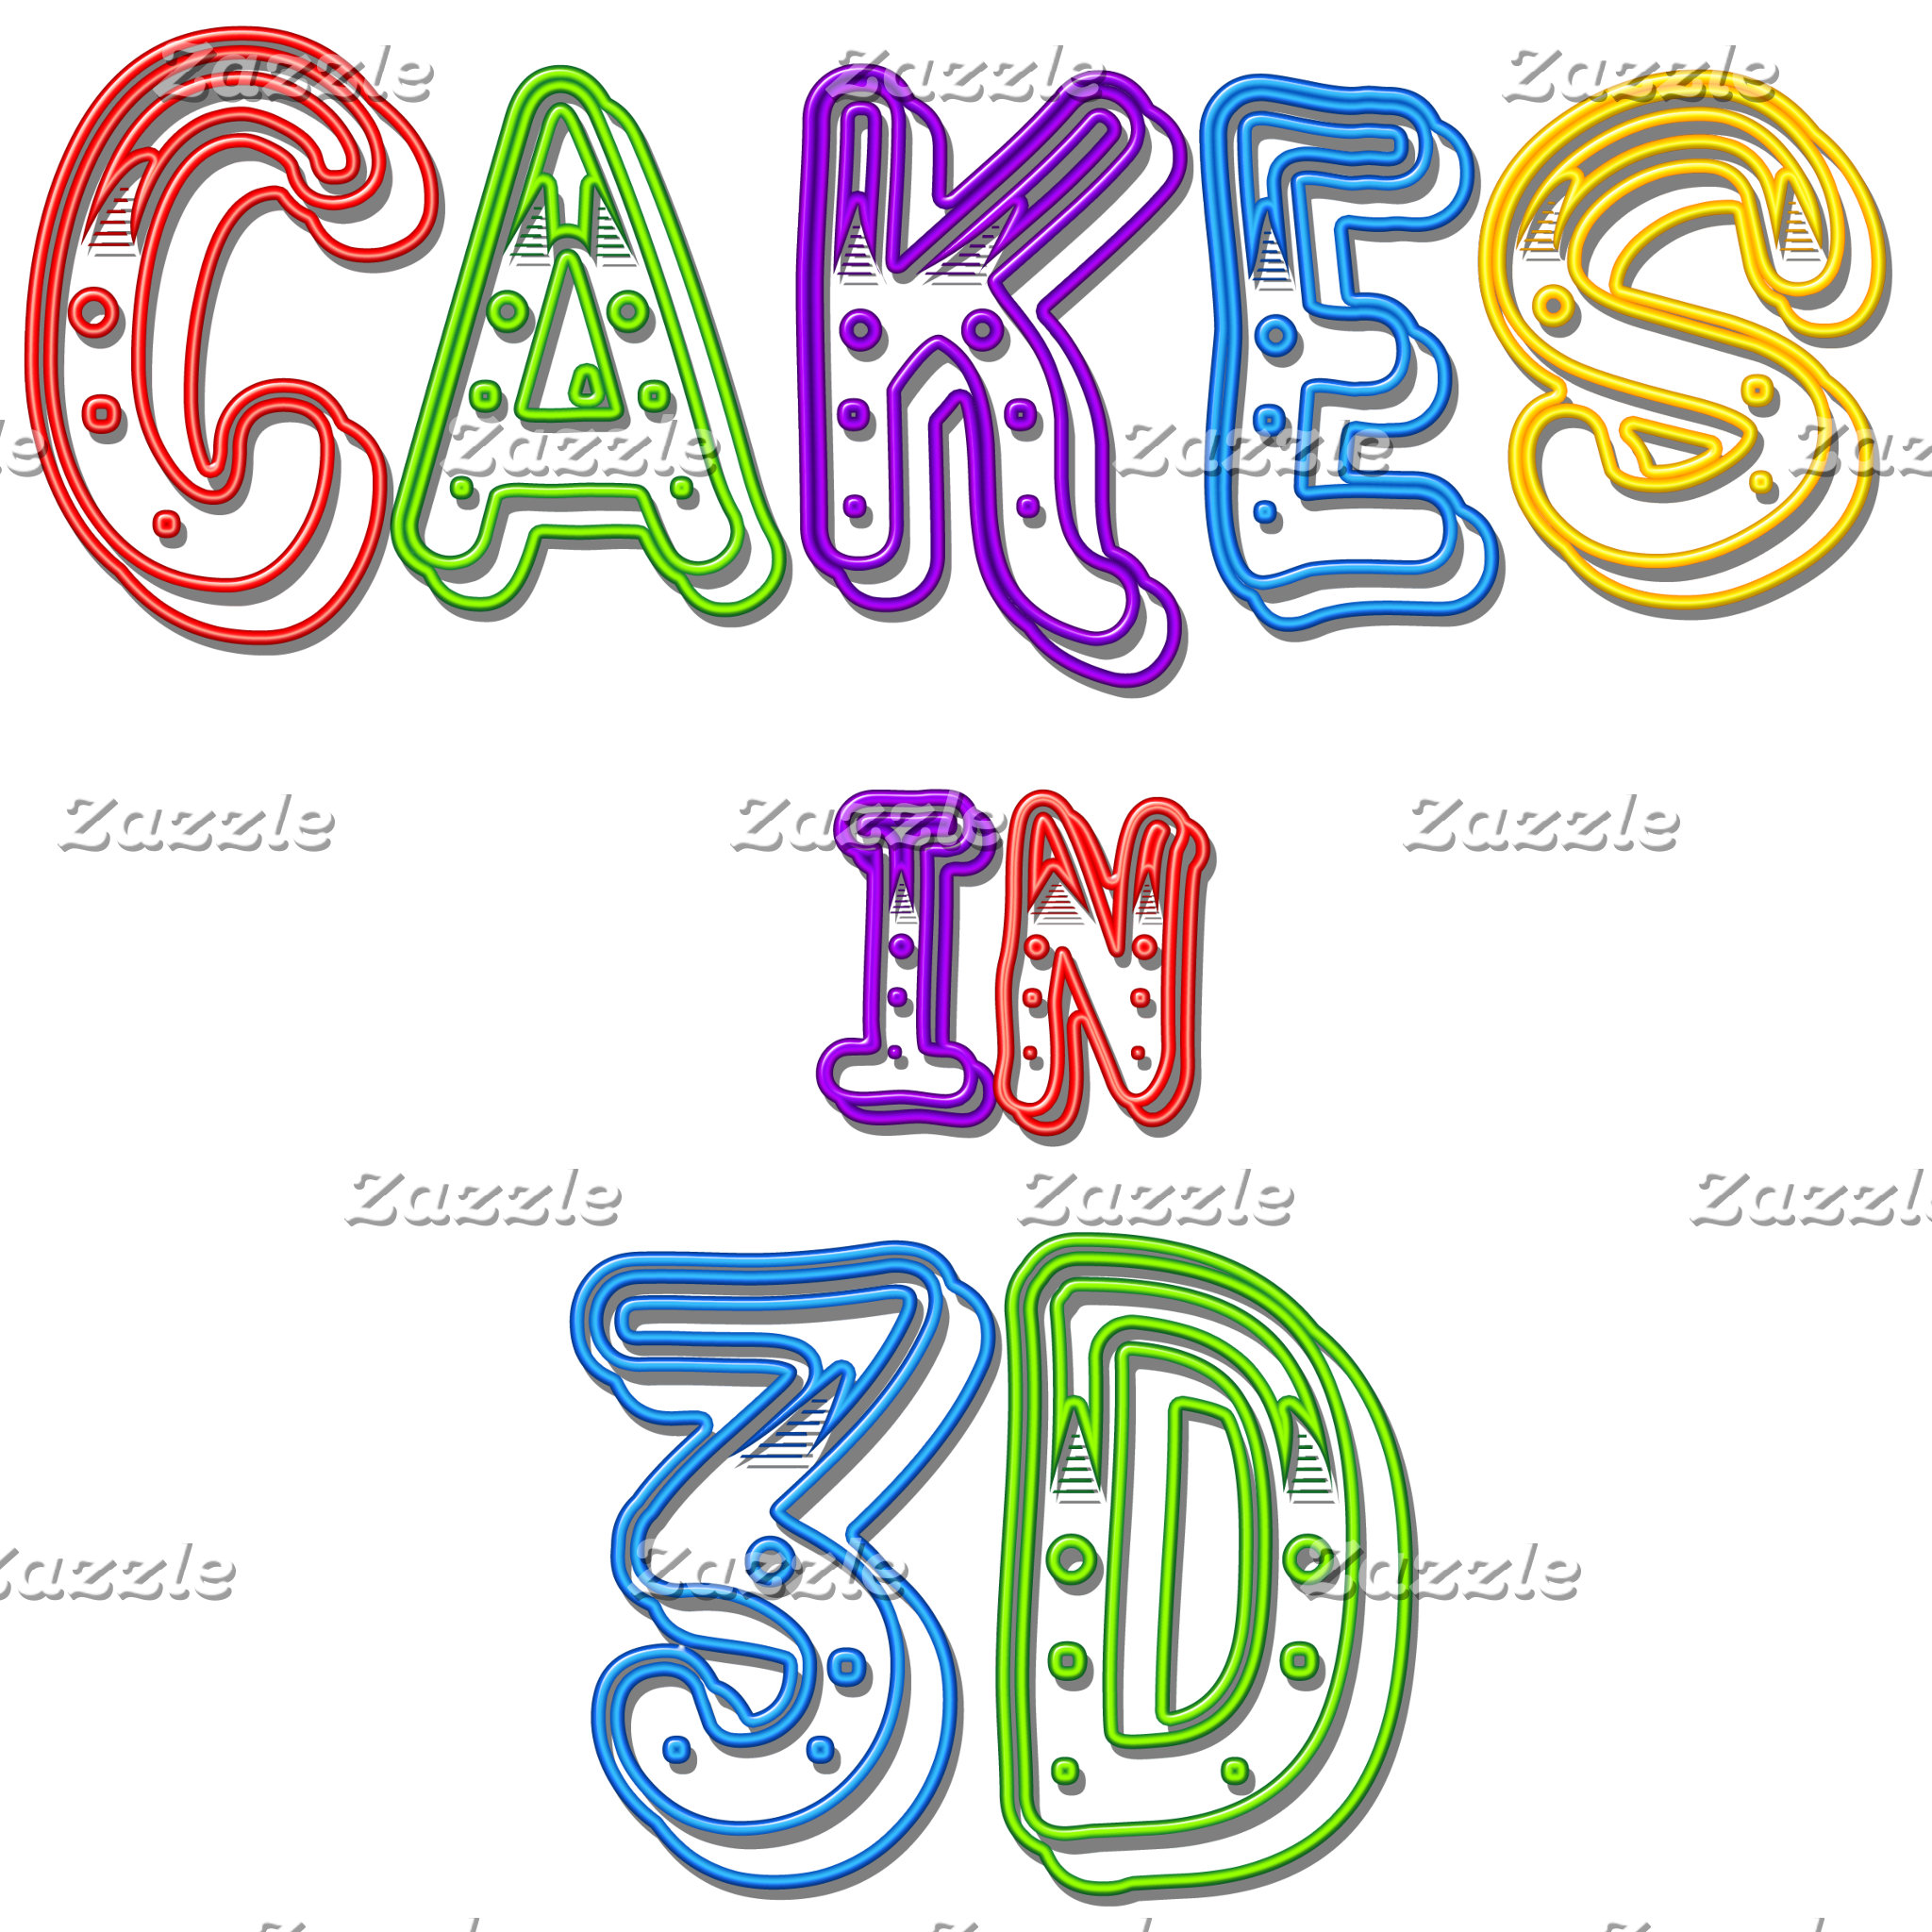 The Cakes in 3D logo 2